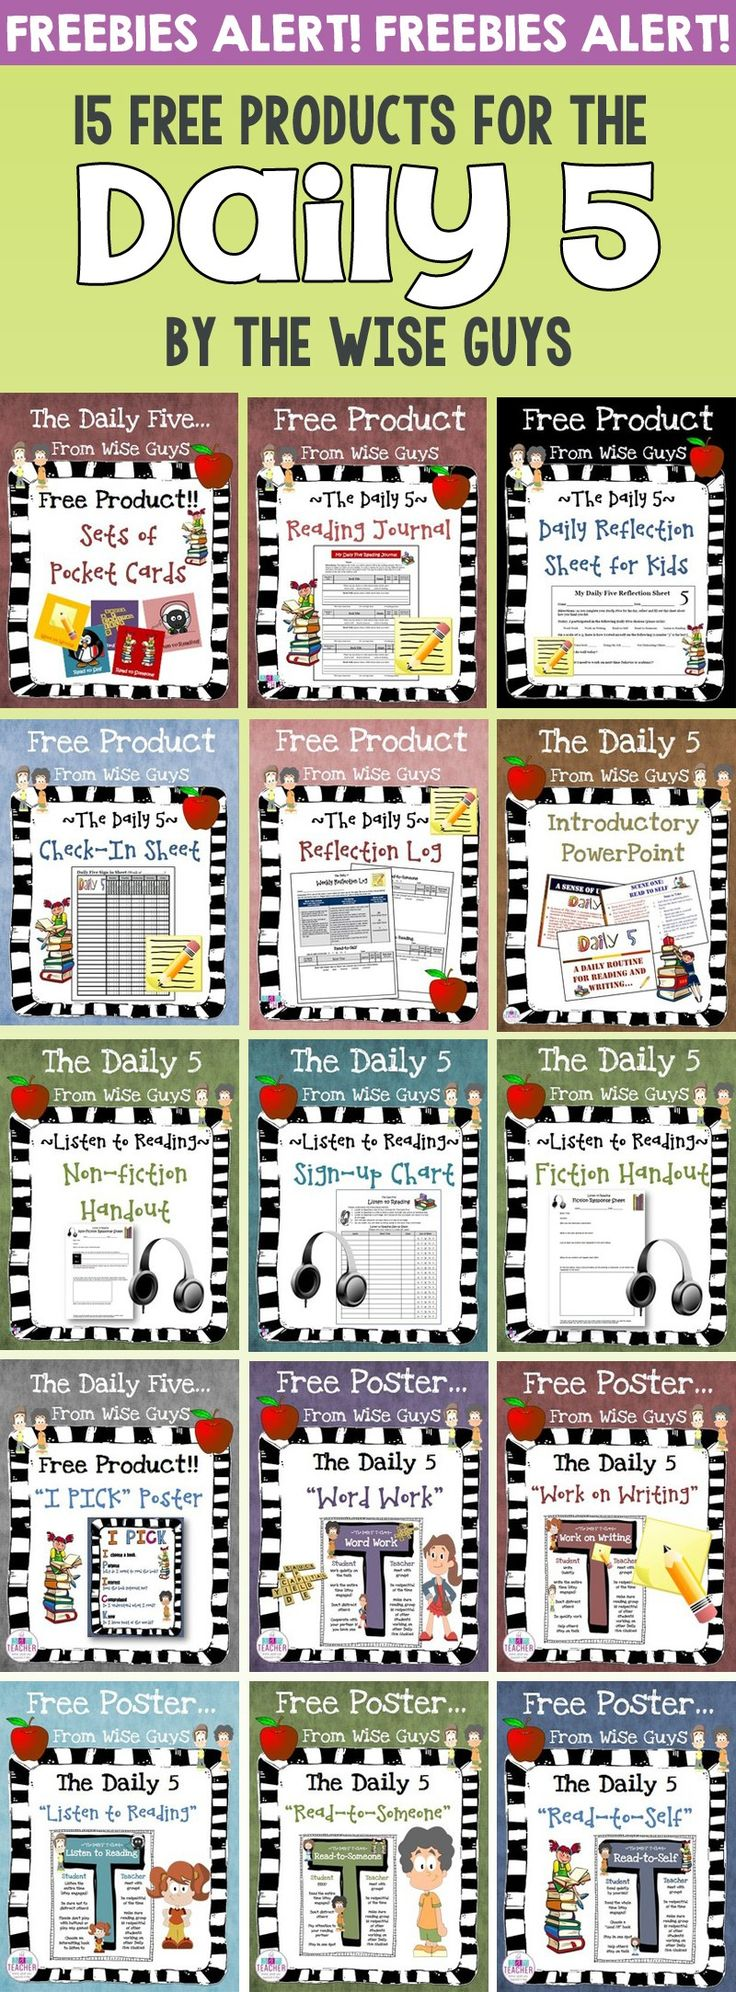 Here are 15 FREE Daily 5 Resources to use in your classroom with your intermediate grades 3-5 students.